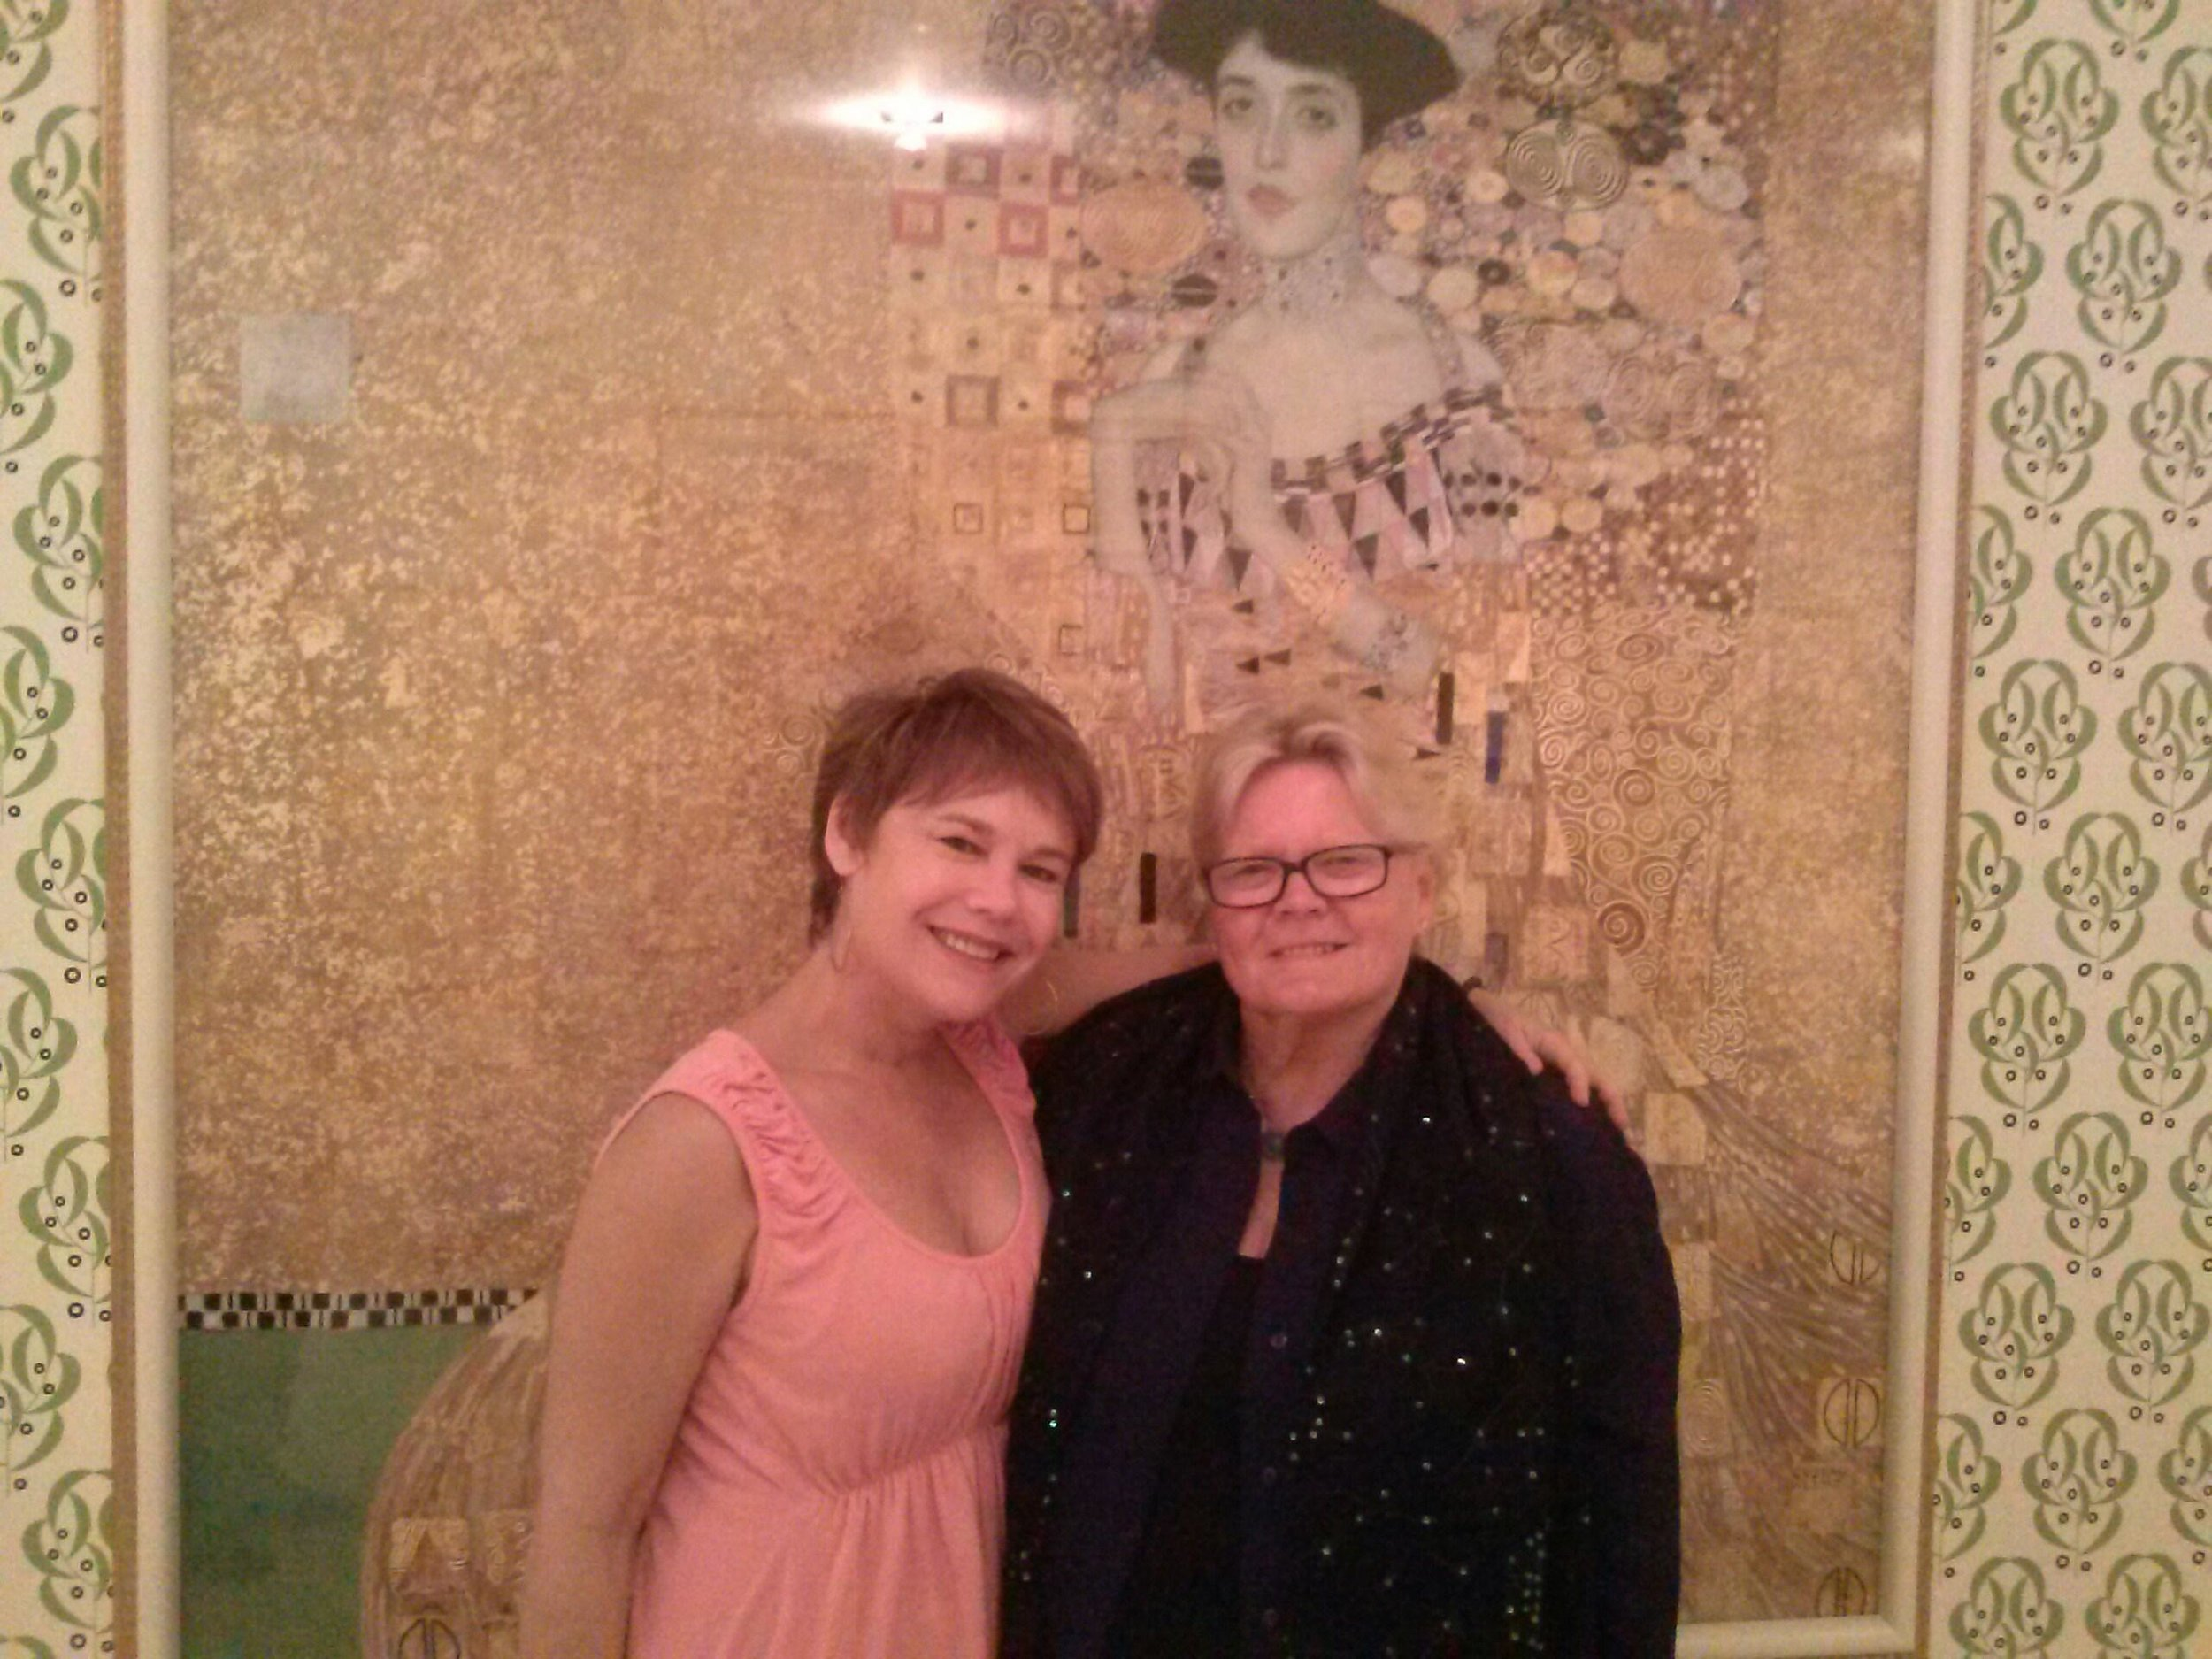 Beau and I at the Neue Galerie in front of Klimt's Woman in Gold.